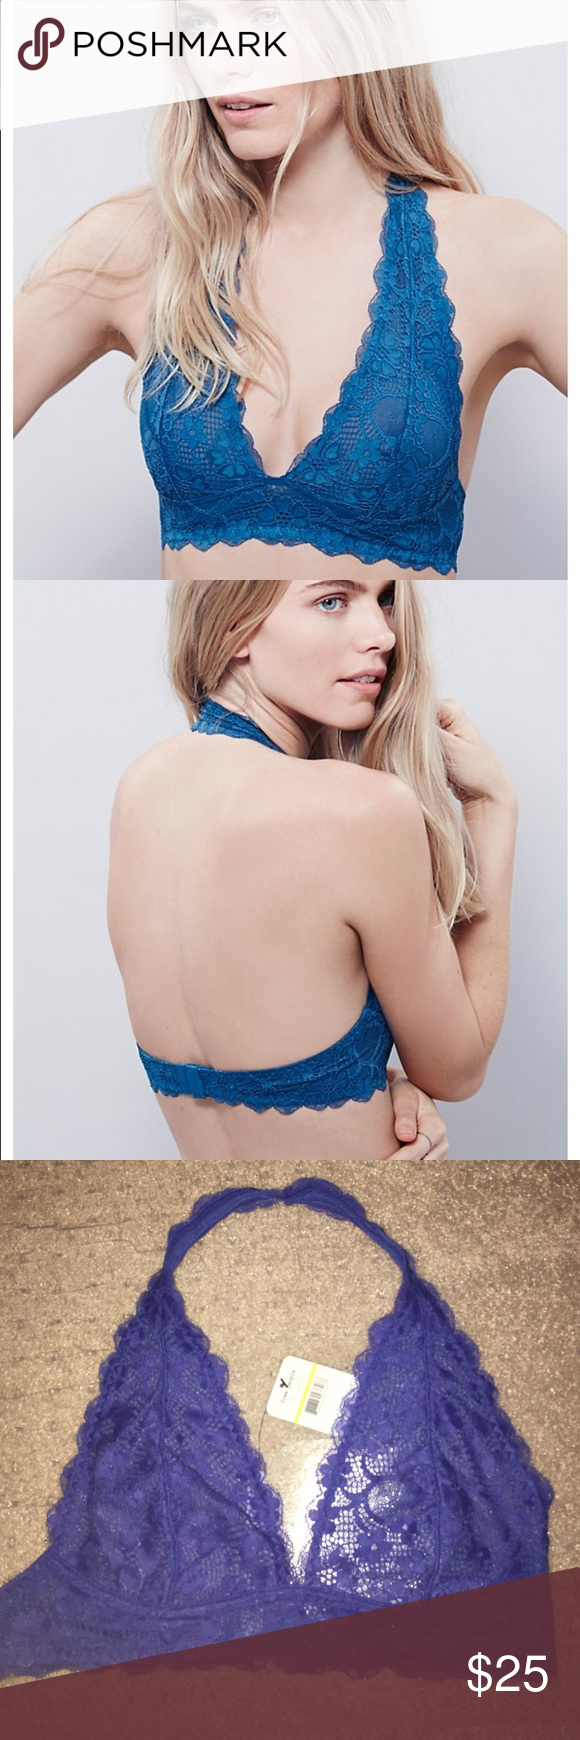 NWT Free People Bralette NWT Free People halter Bralette . Color is more purple blue (as shown in last picture). FIRM PRICE. 5% off 2 or more items! Free People Intimates & Sleepwear Bras